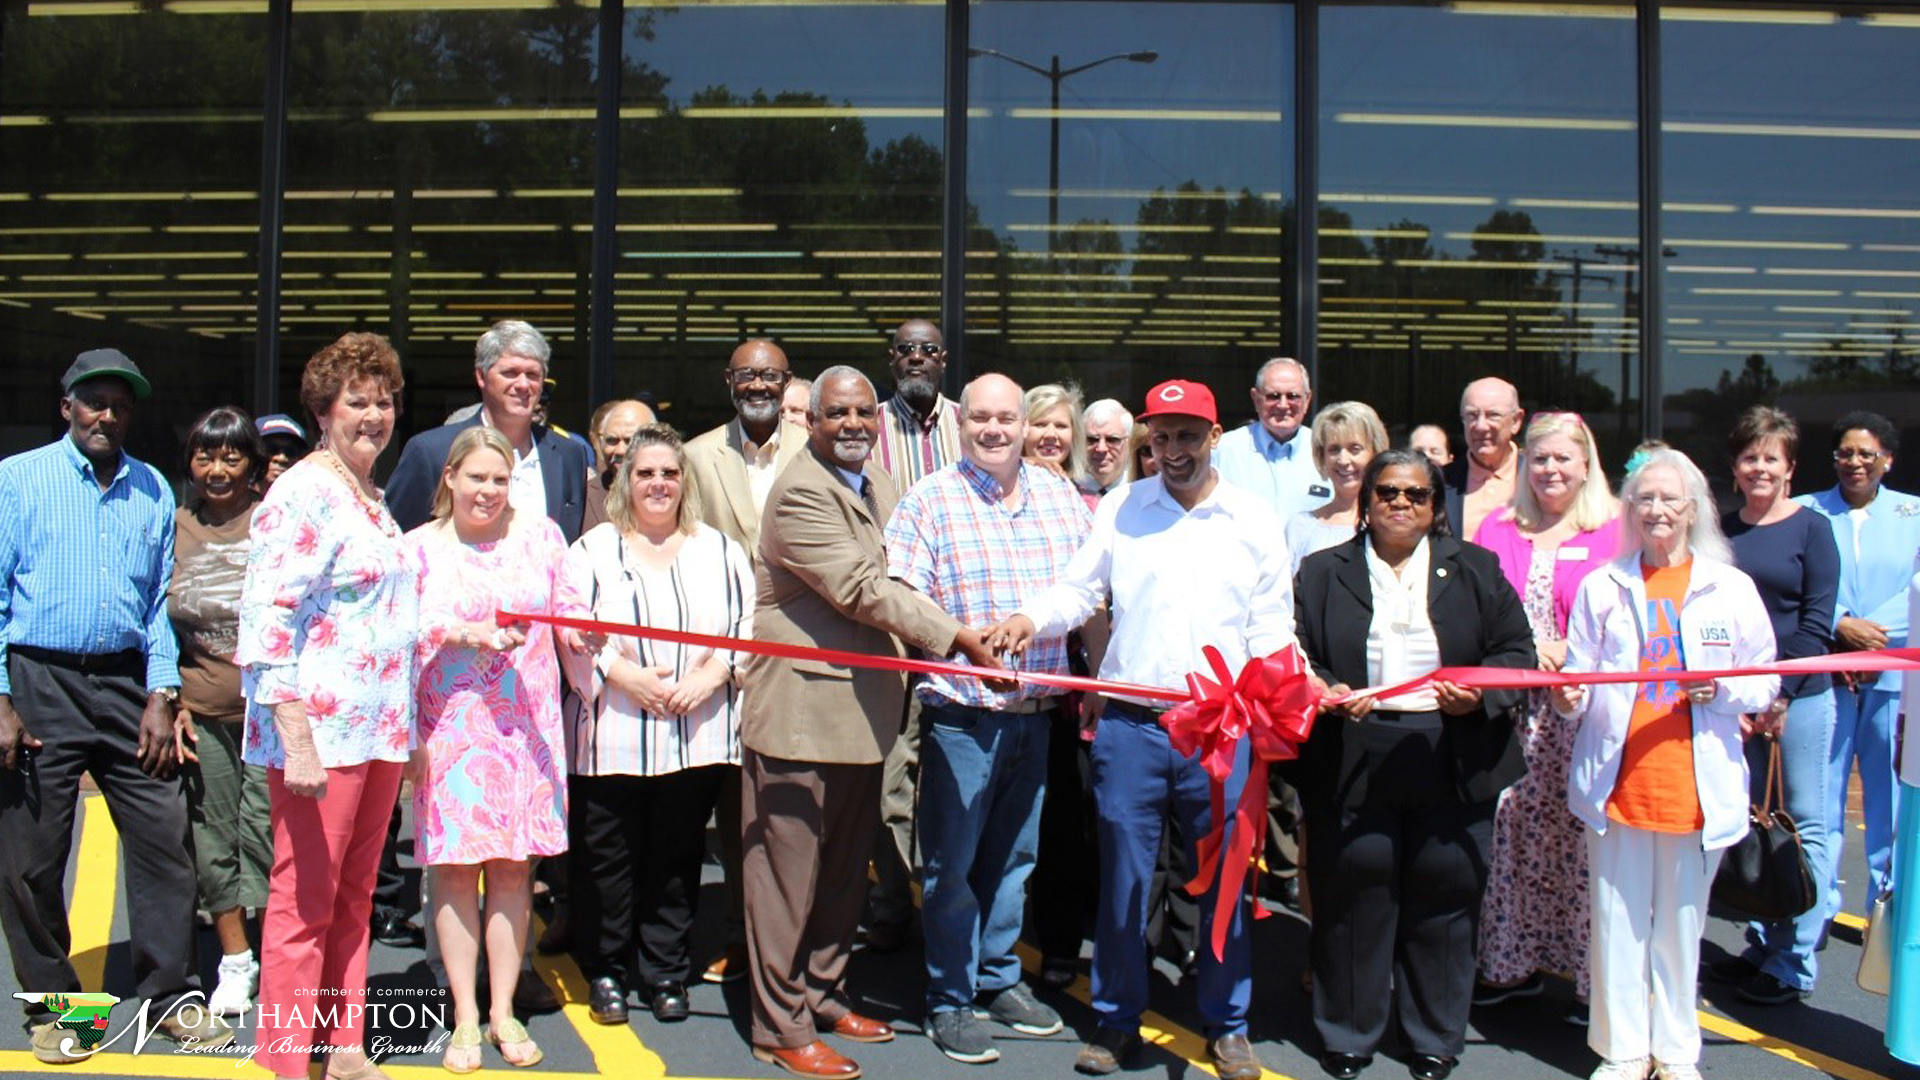 Jackson Food Fresh and Ace Hardware Jackson NC Ribbon Cutting May 14, 2019.